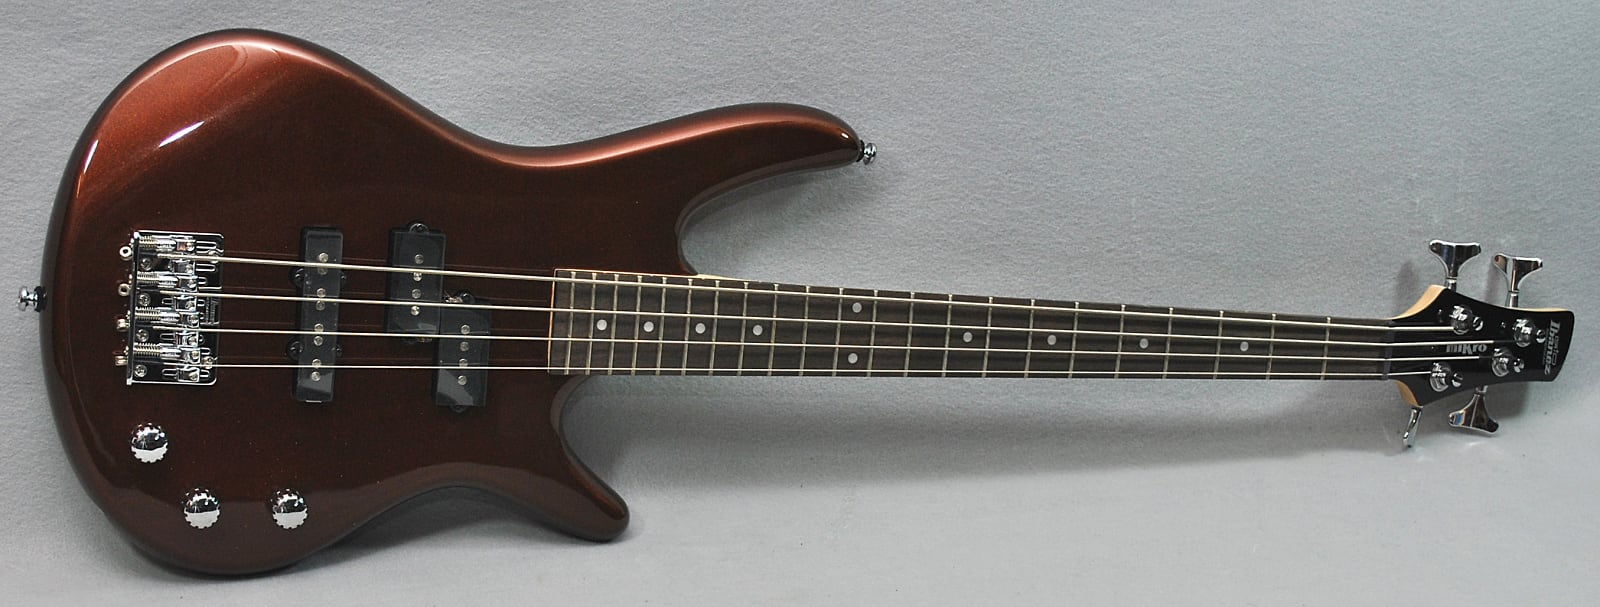 any ibanez short scales... beside the mikro? | TalkBass.com